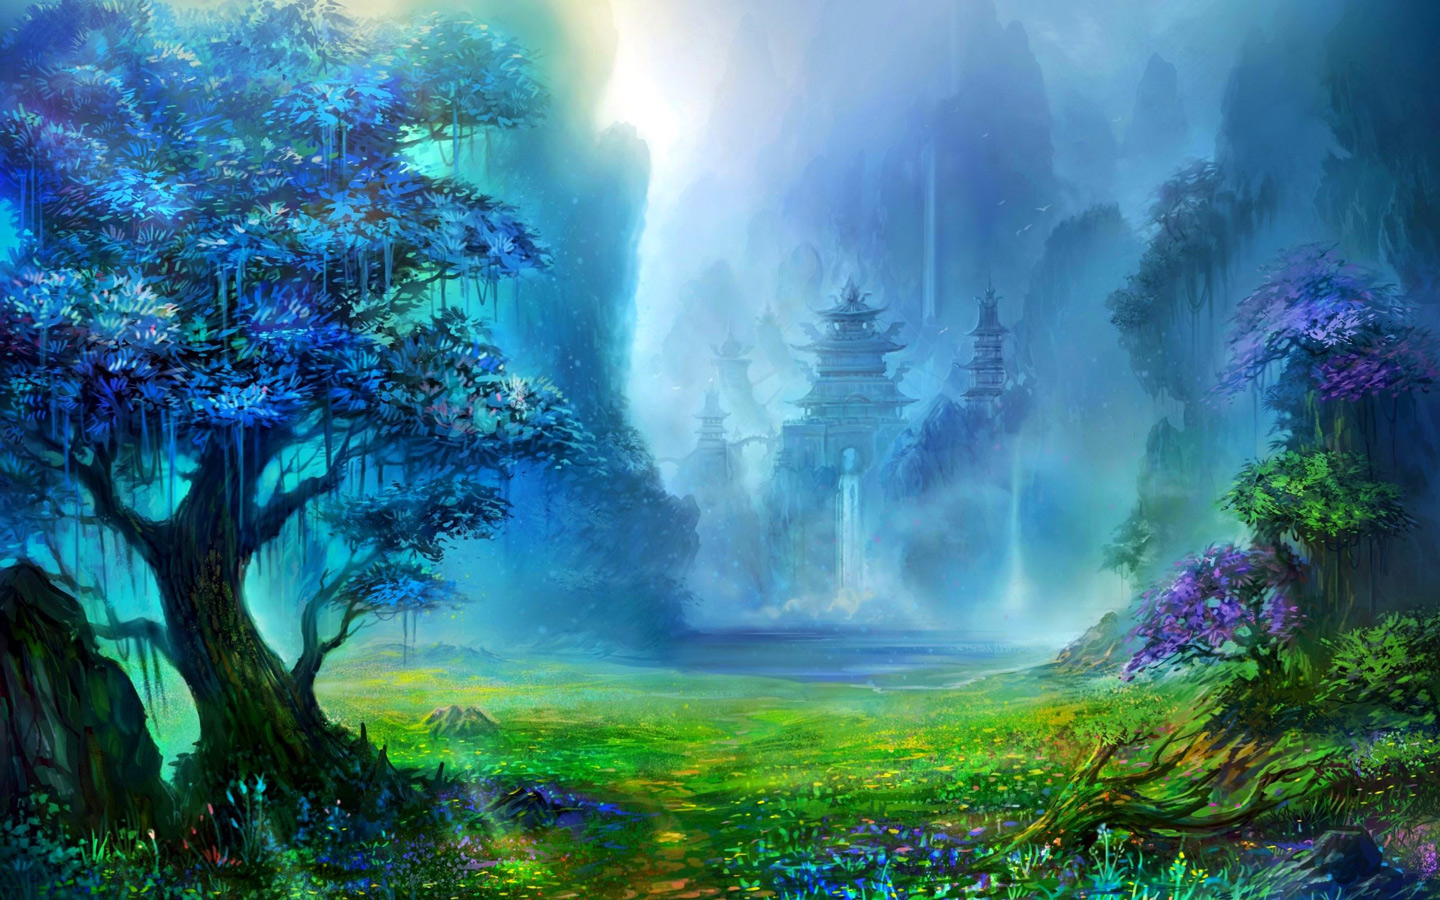 Anime Artwork Landscape Wallpapers Computer Desktop 1440x900